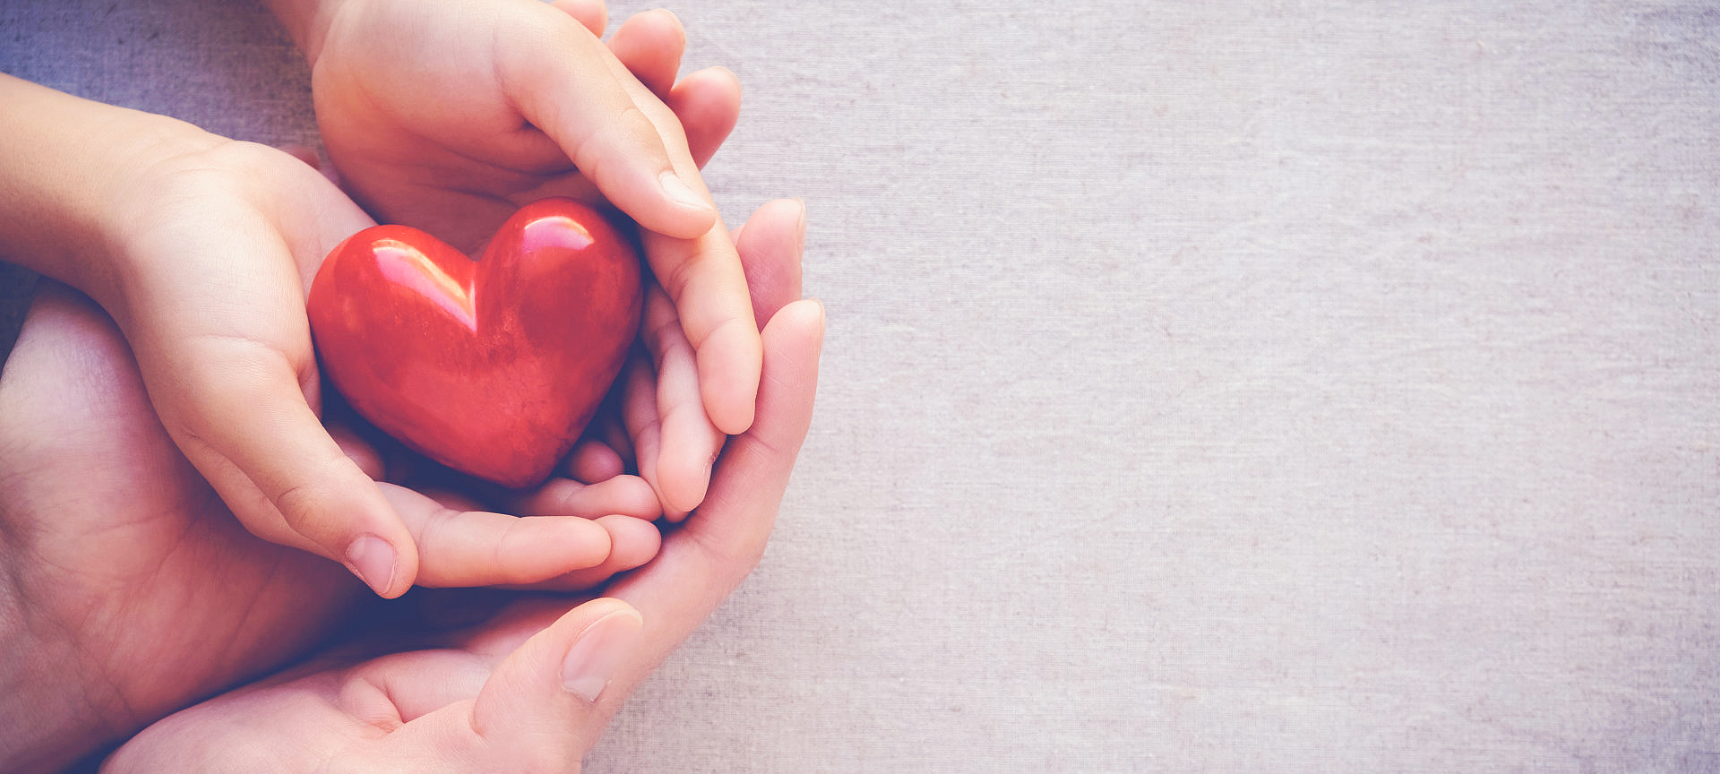 parent and child's hand holding an heart shaped object